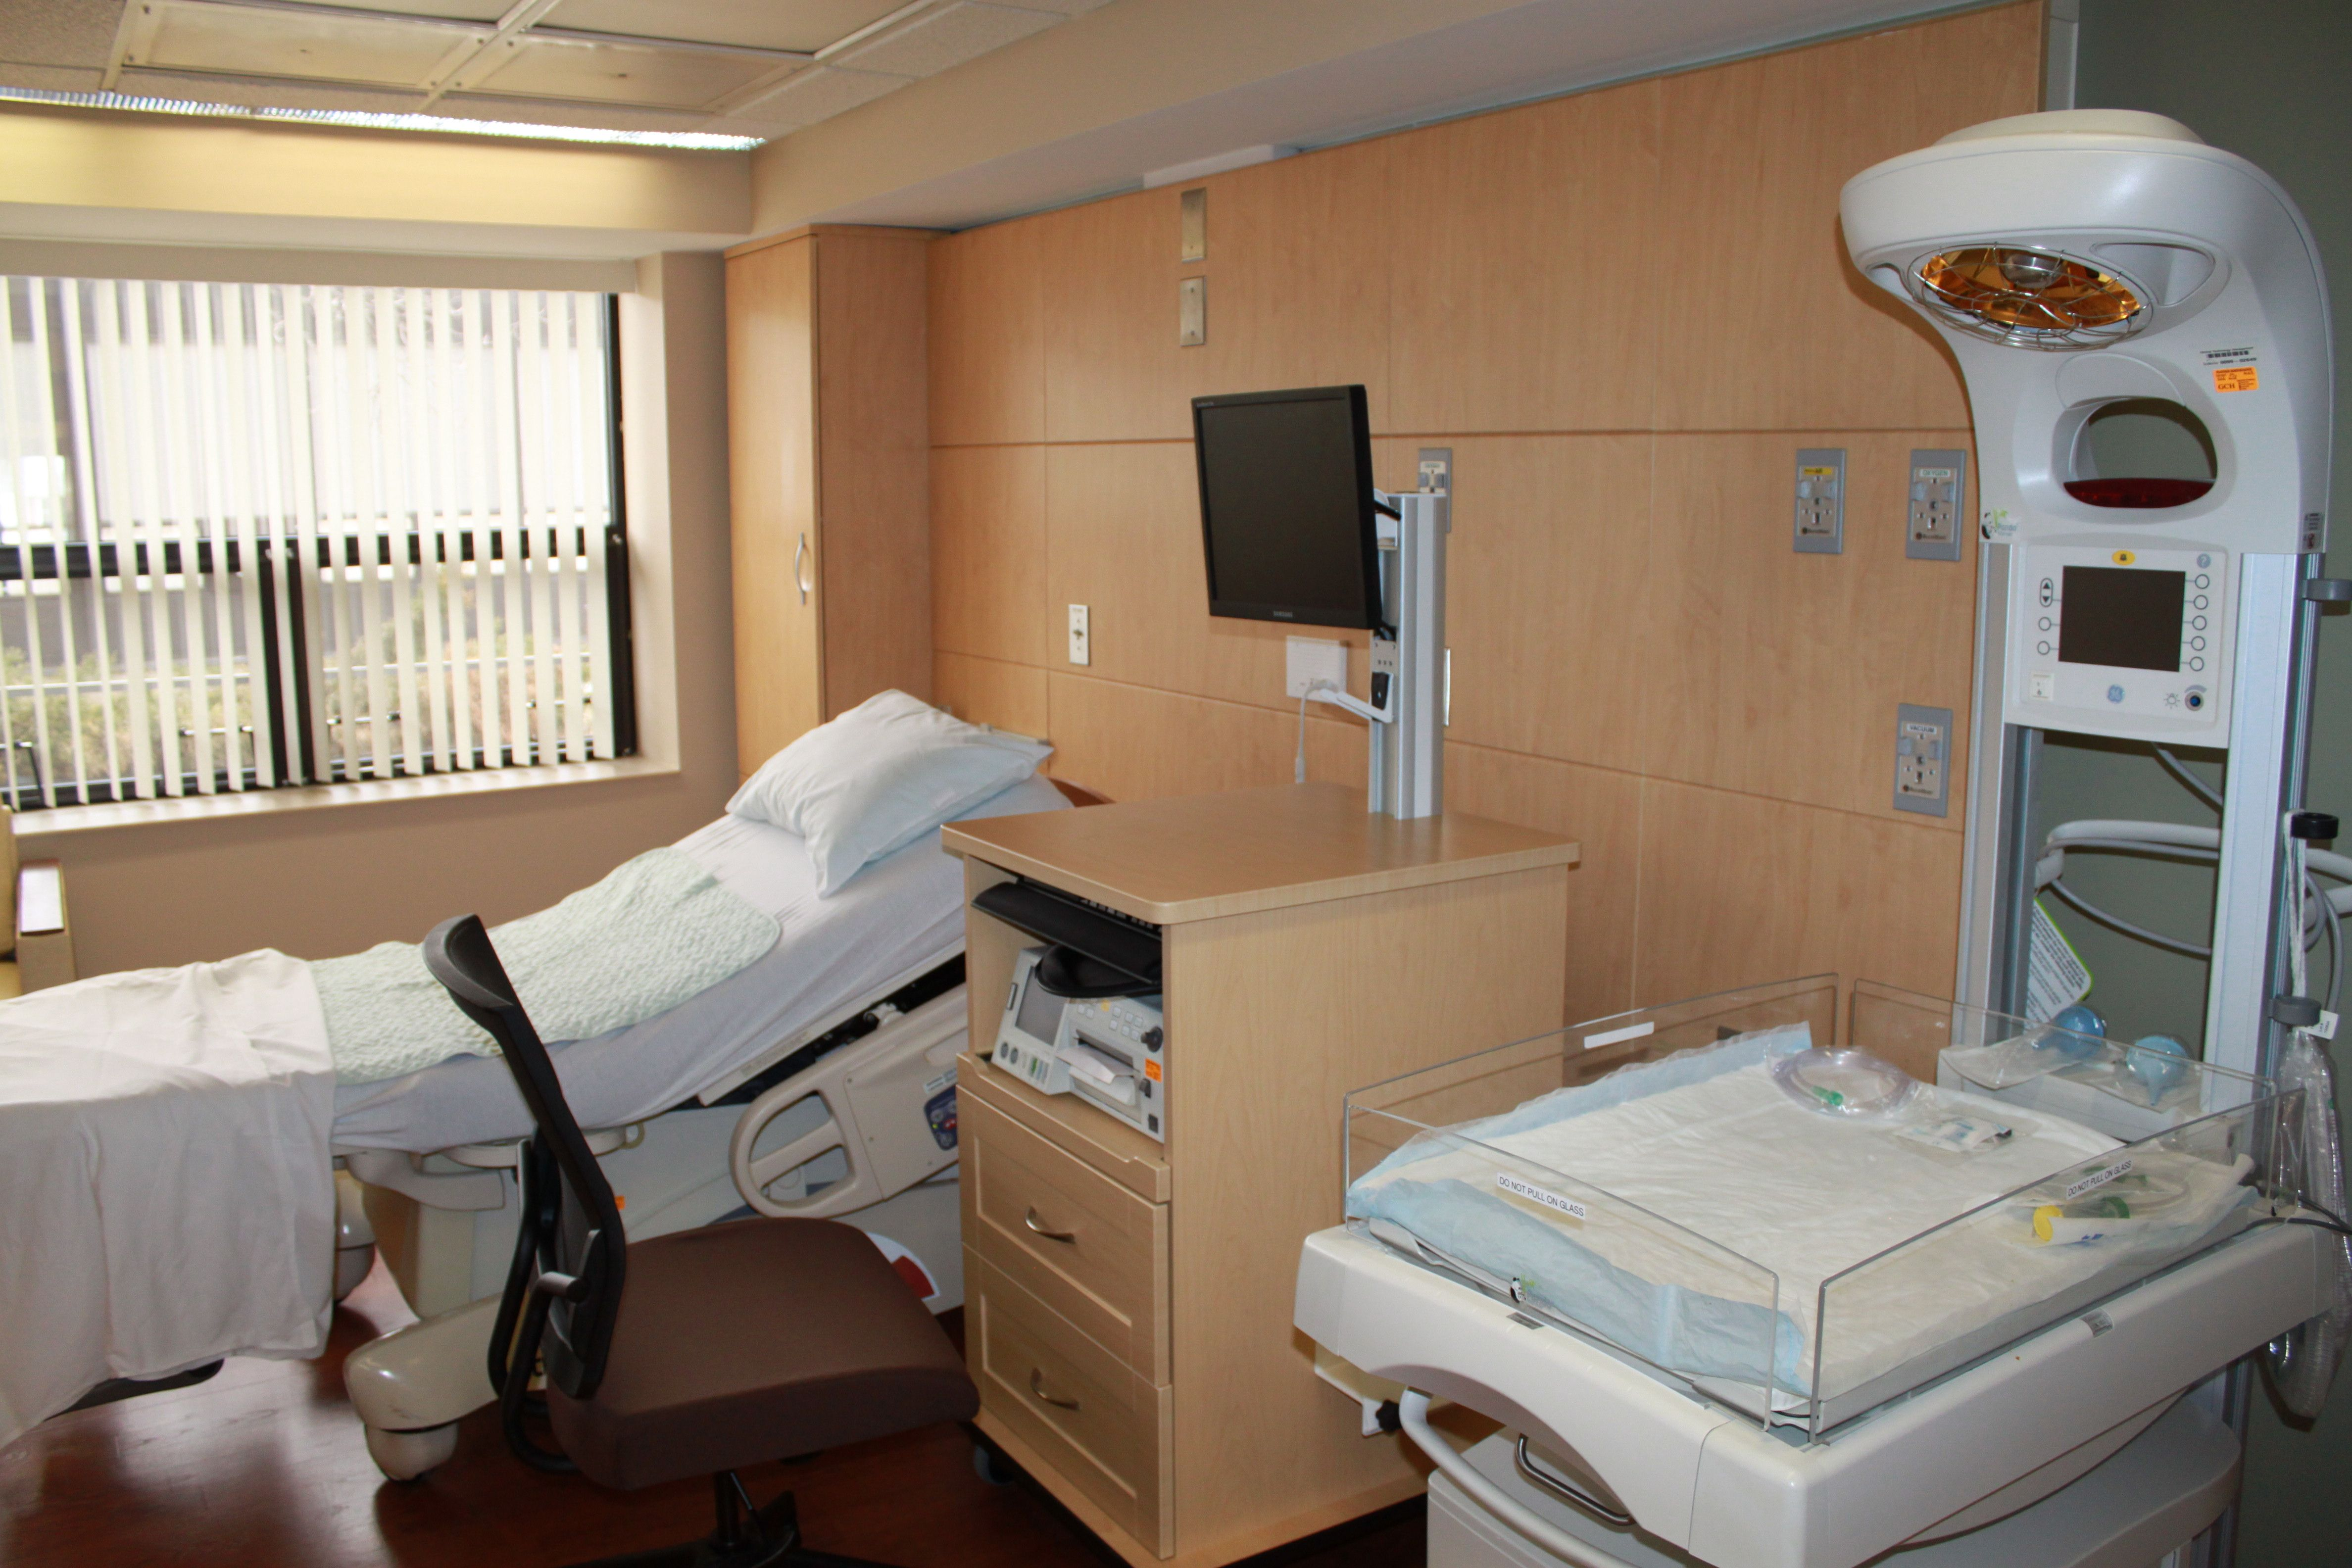 A Room At The Garden City Hospital Birthing Center.